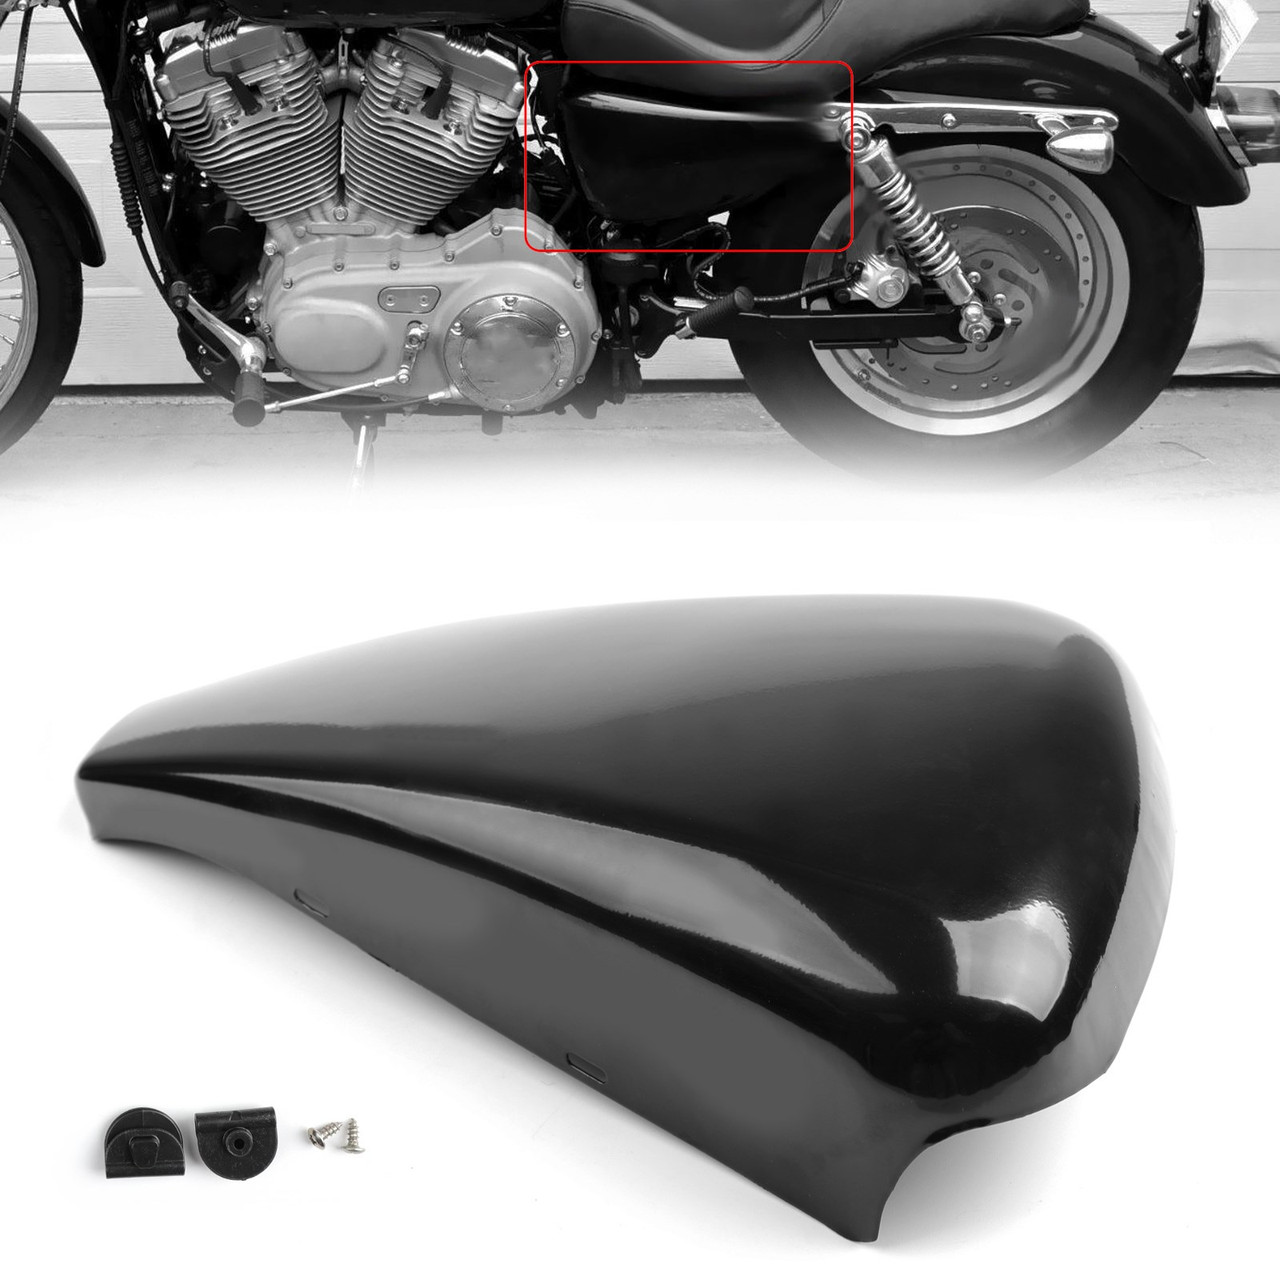 1 piece Left Side Battery Cover For Harley Sportster XL883 XL1200 2004-2018